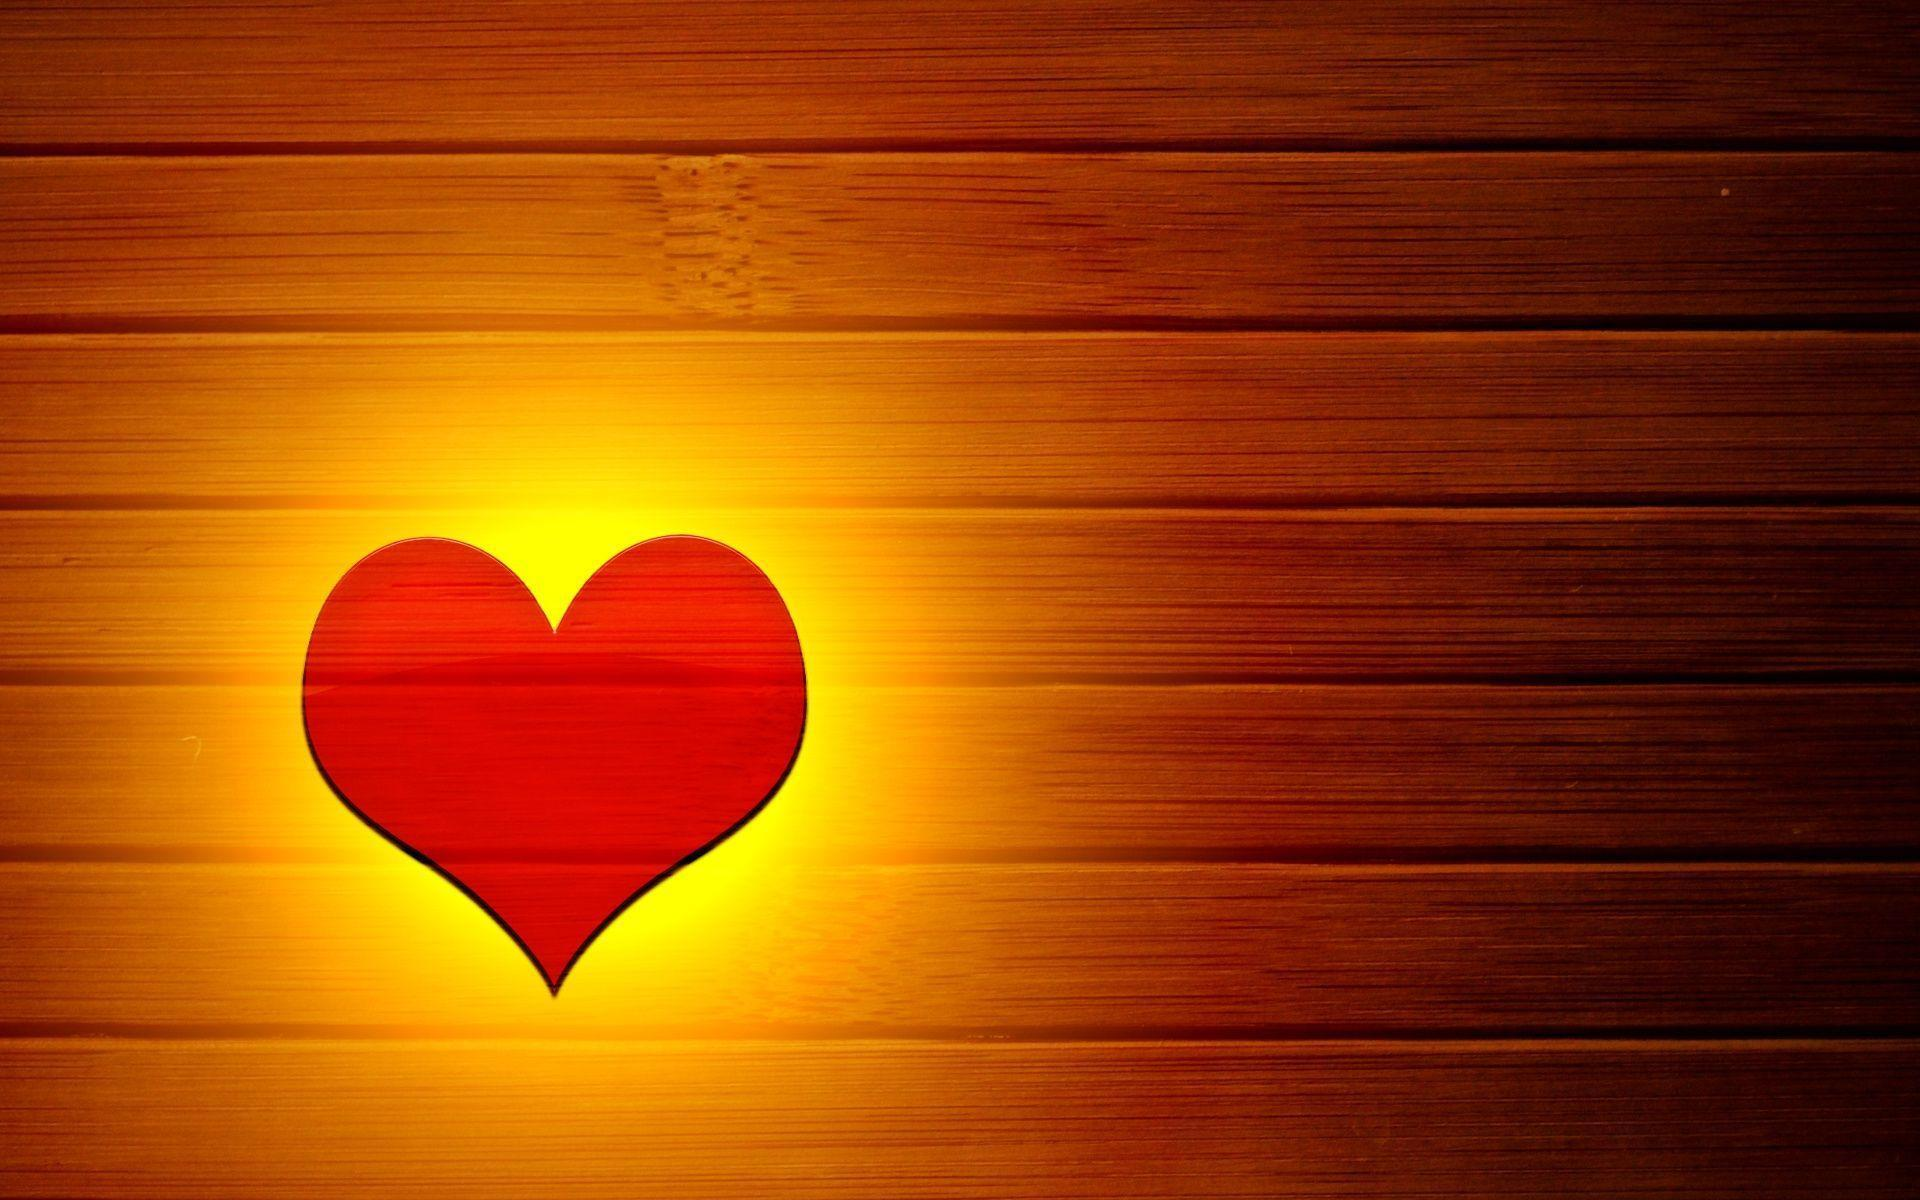 Love Wallpapers Maker : Love Backgrounds Wallpapers - Wallpaper cave